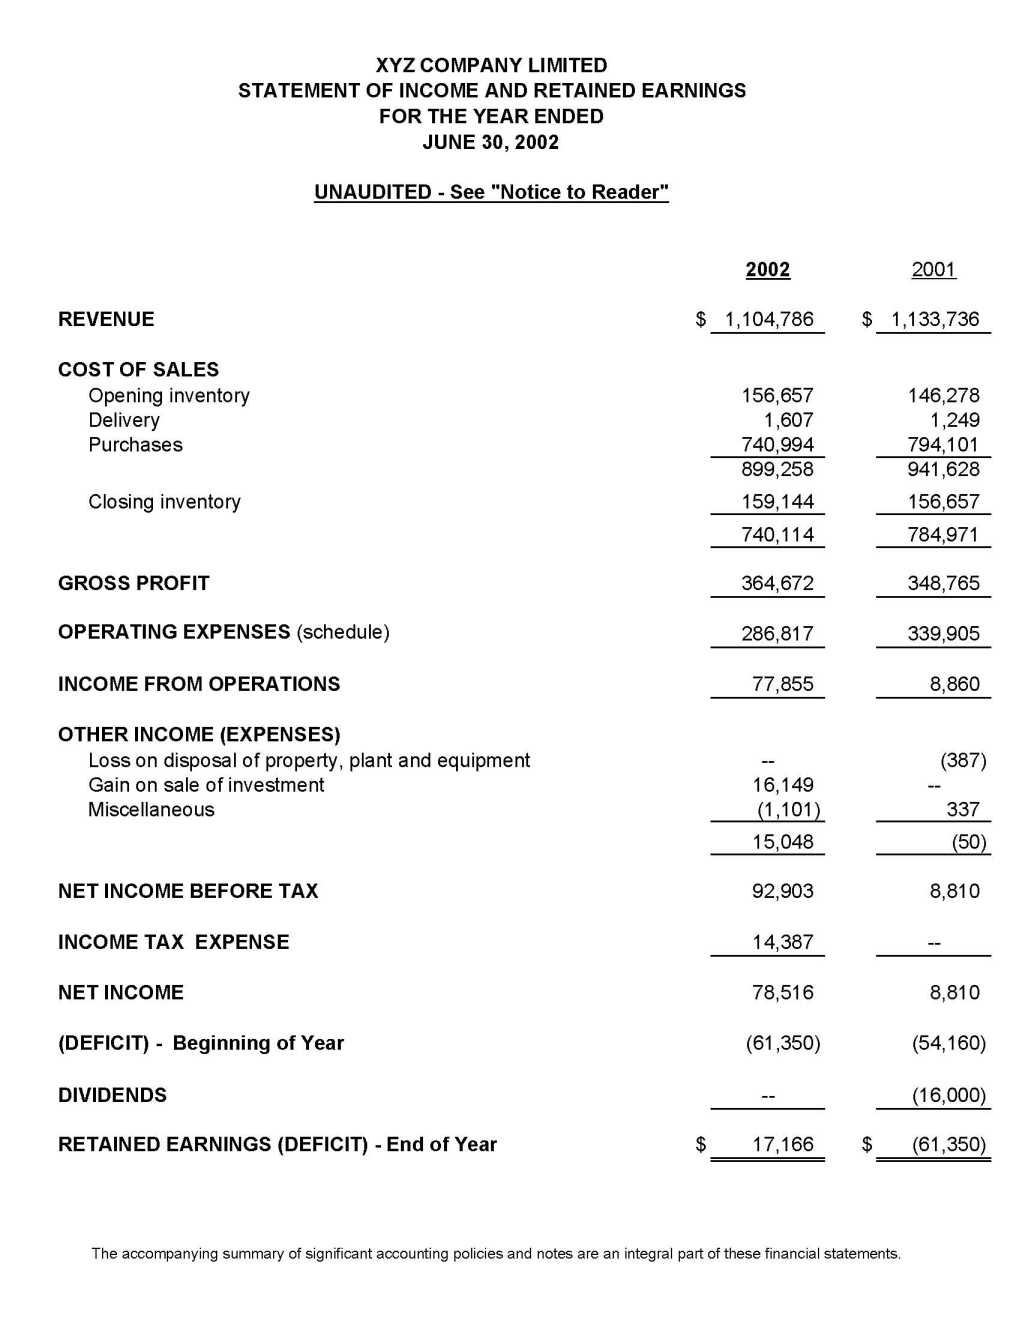 financial statement example - android-app.info